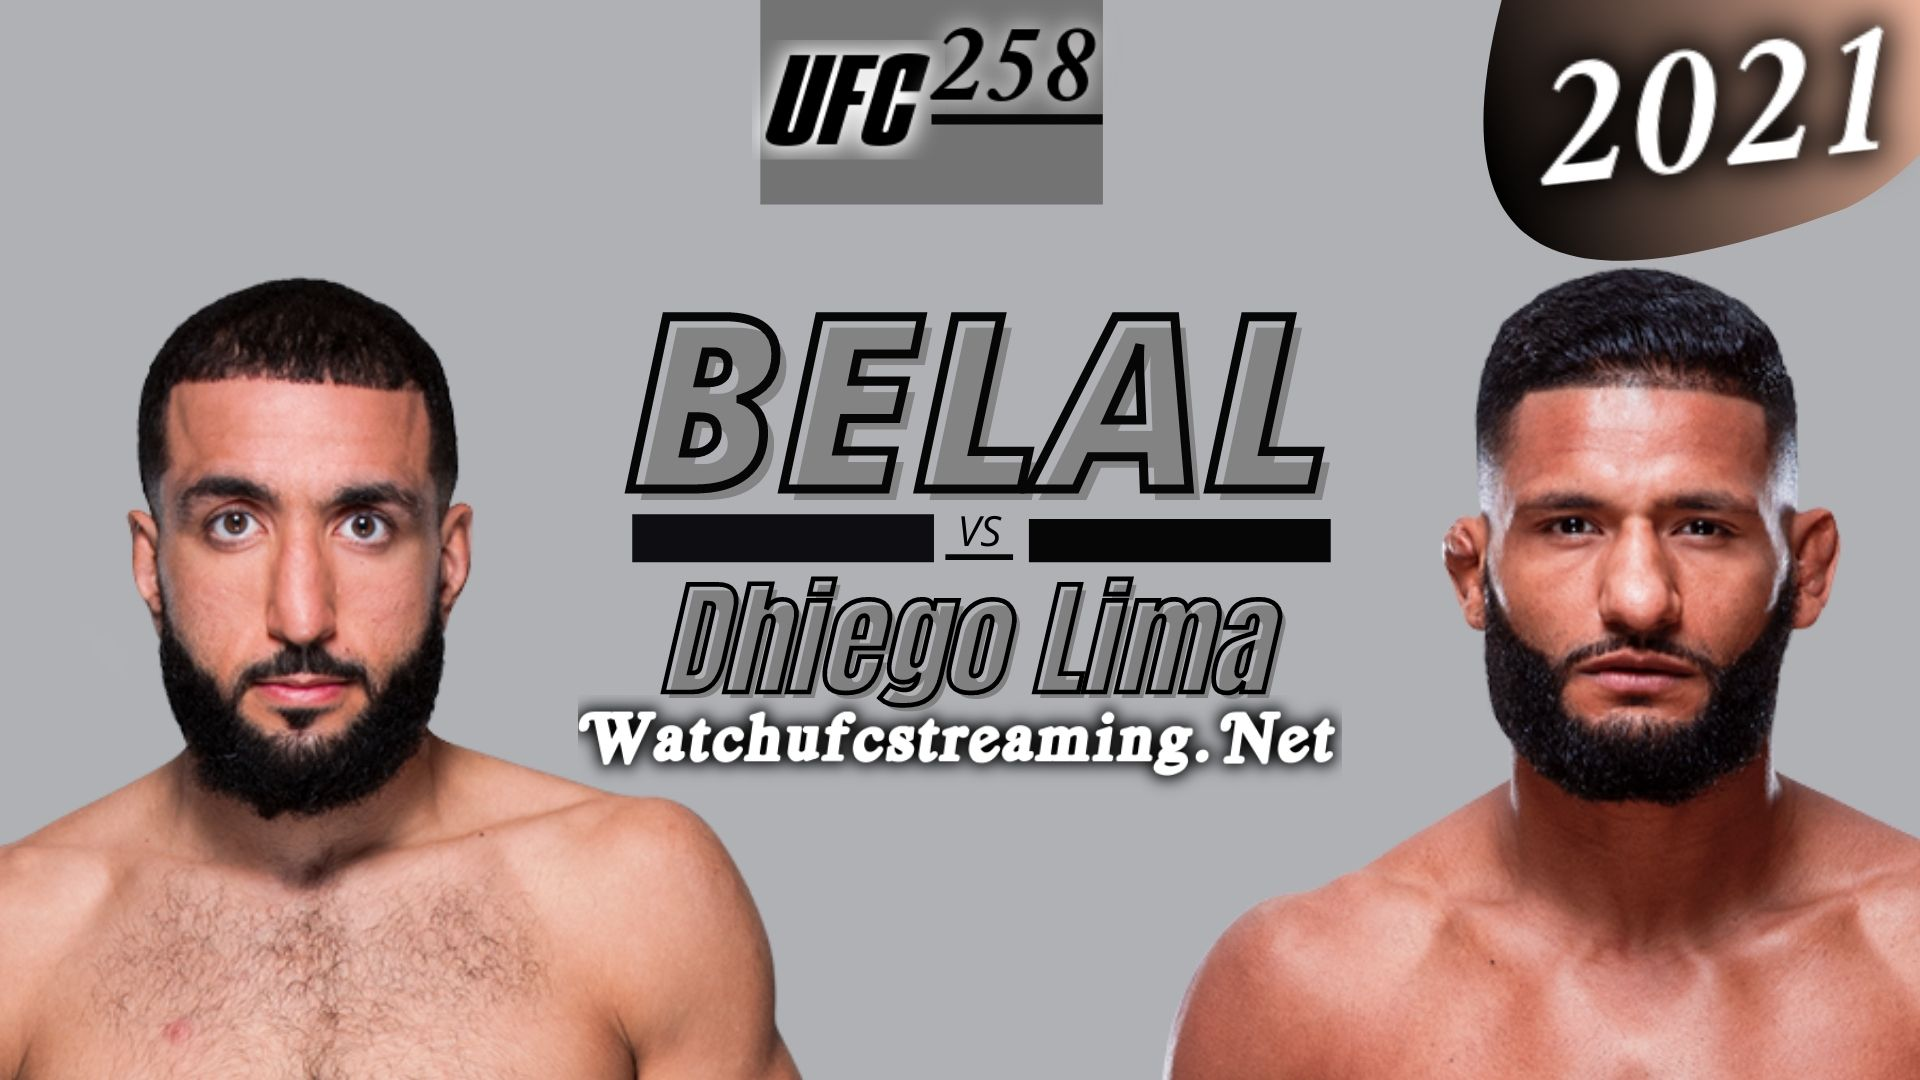 UFC 258 : Belal Muhammad Vs Dhiego Lima Highlights 2021